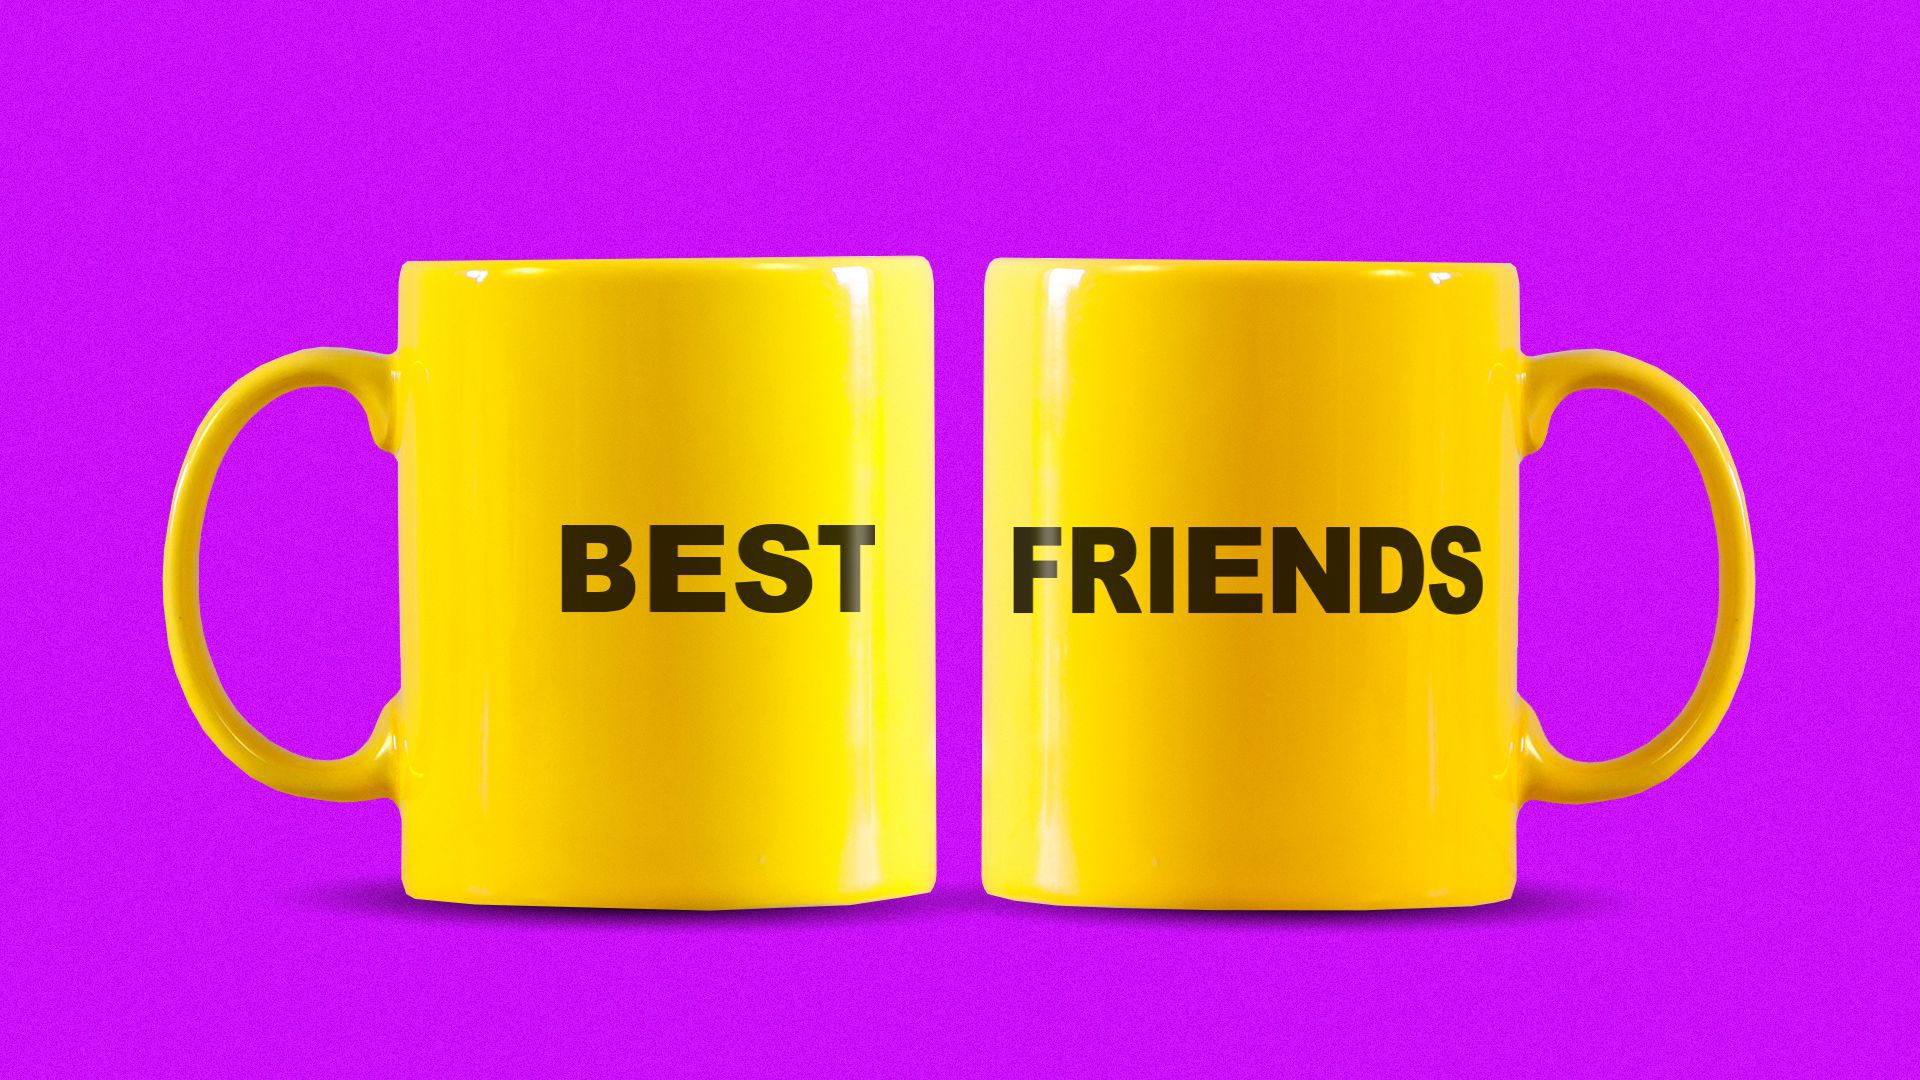 """Illustration of two mugs, one with the word """"best"""" and the other with the word """"friends"""" on their sides"""